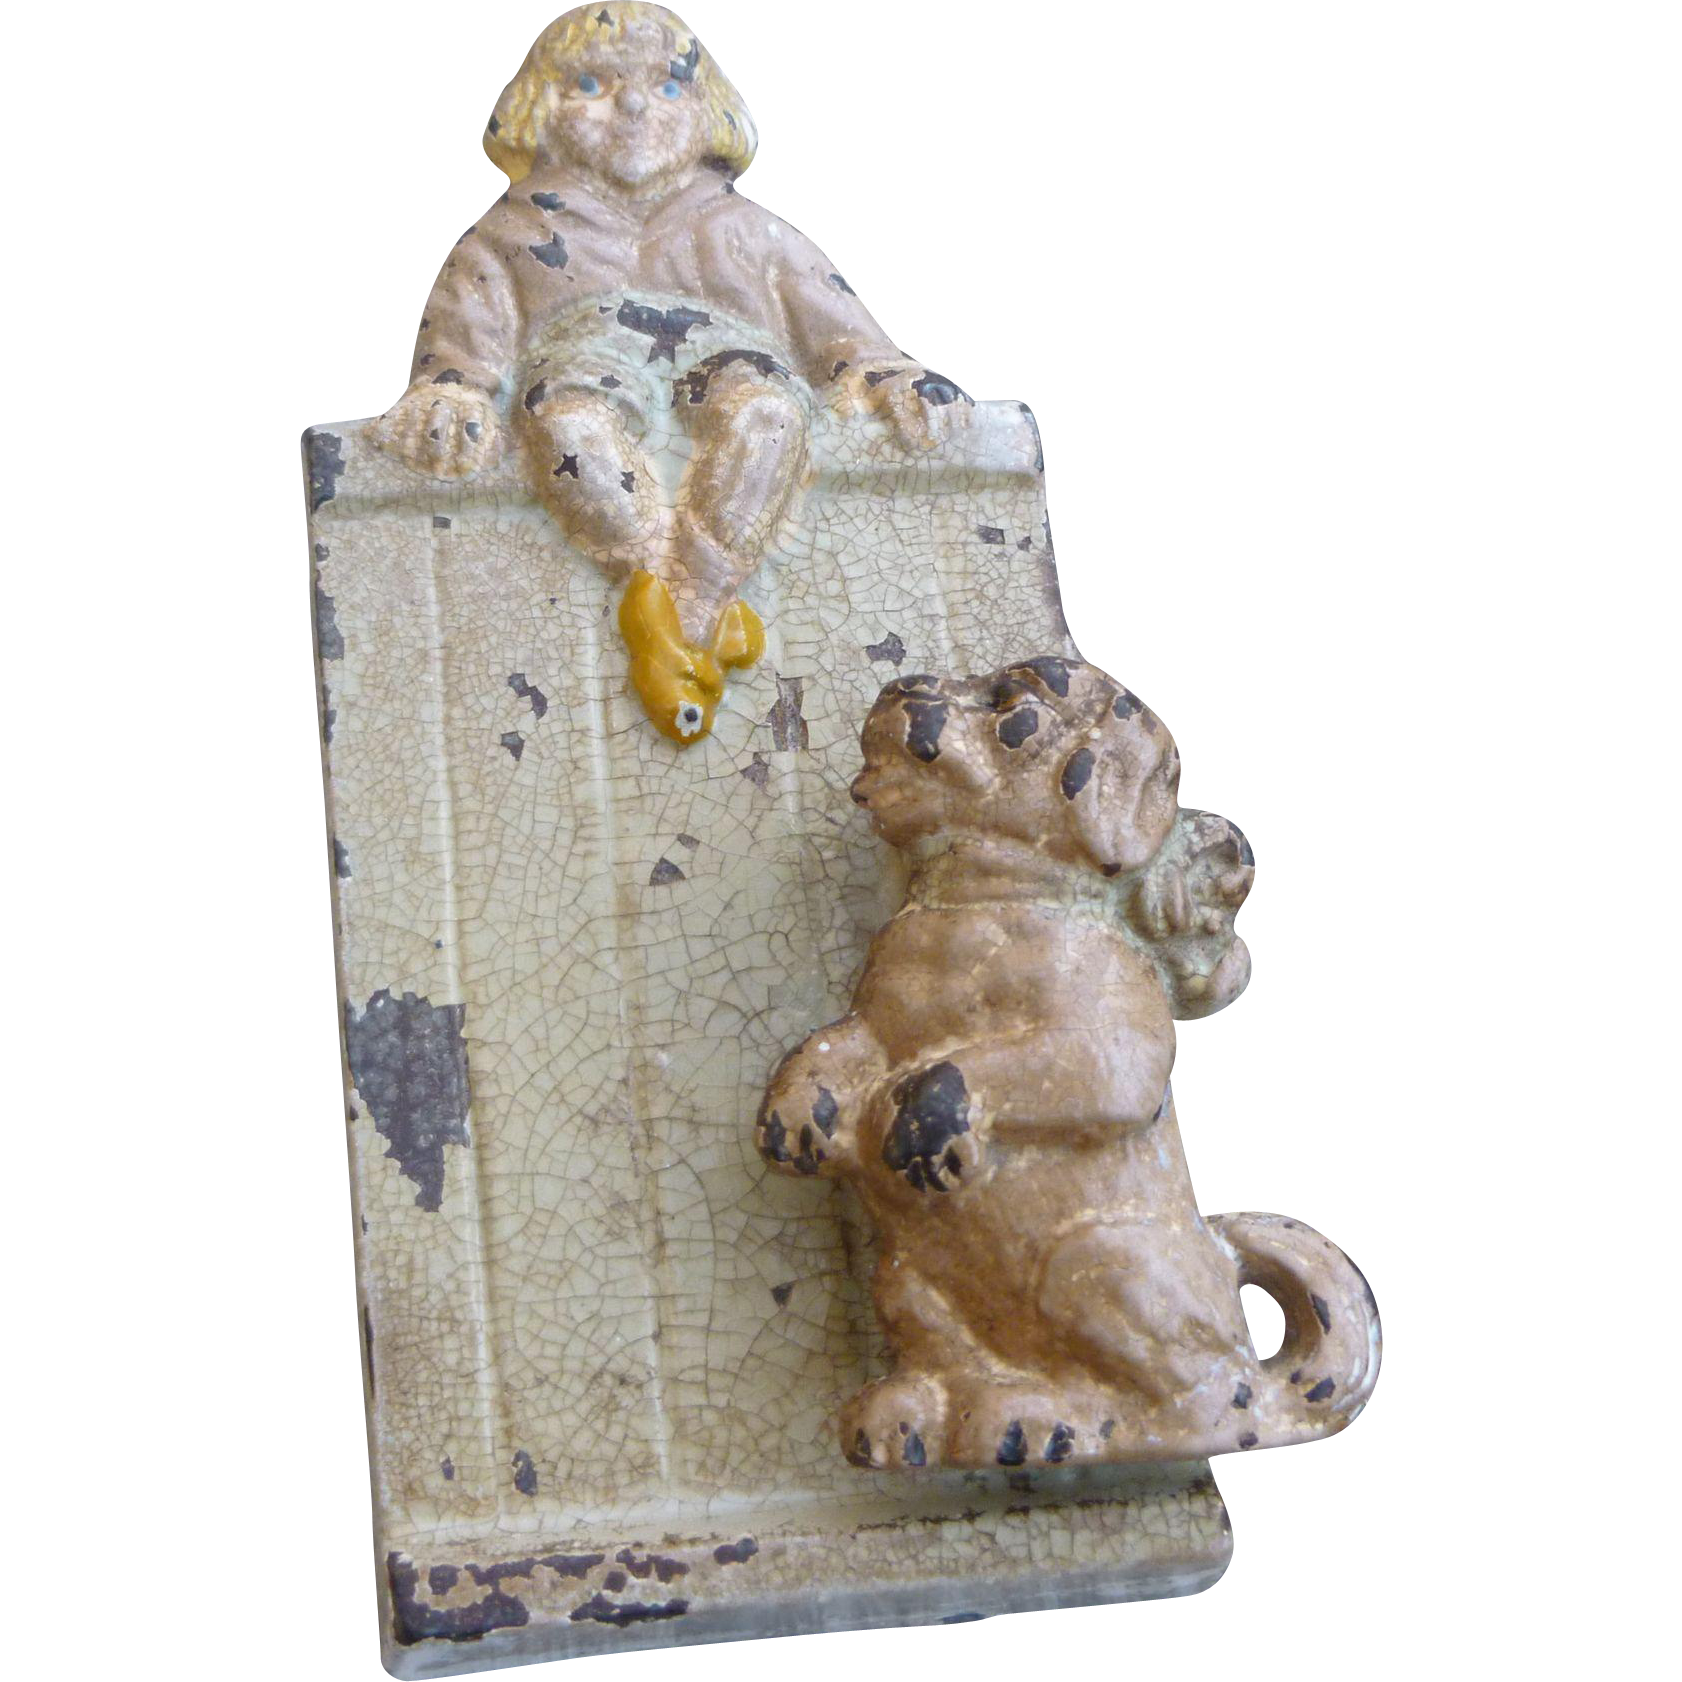 Cast iron door stoppers knockers nautical accents nautical decor - Rare Buster Brown And Tige Hubley Cast Iron Door Knocker